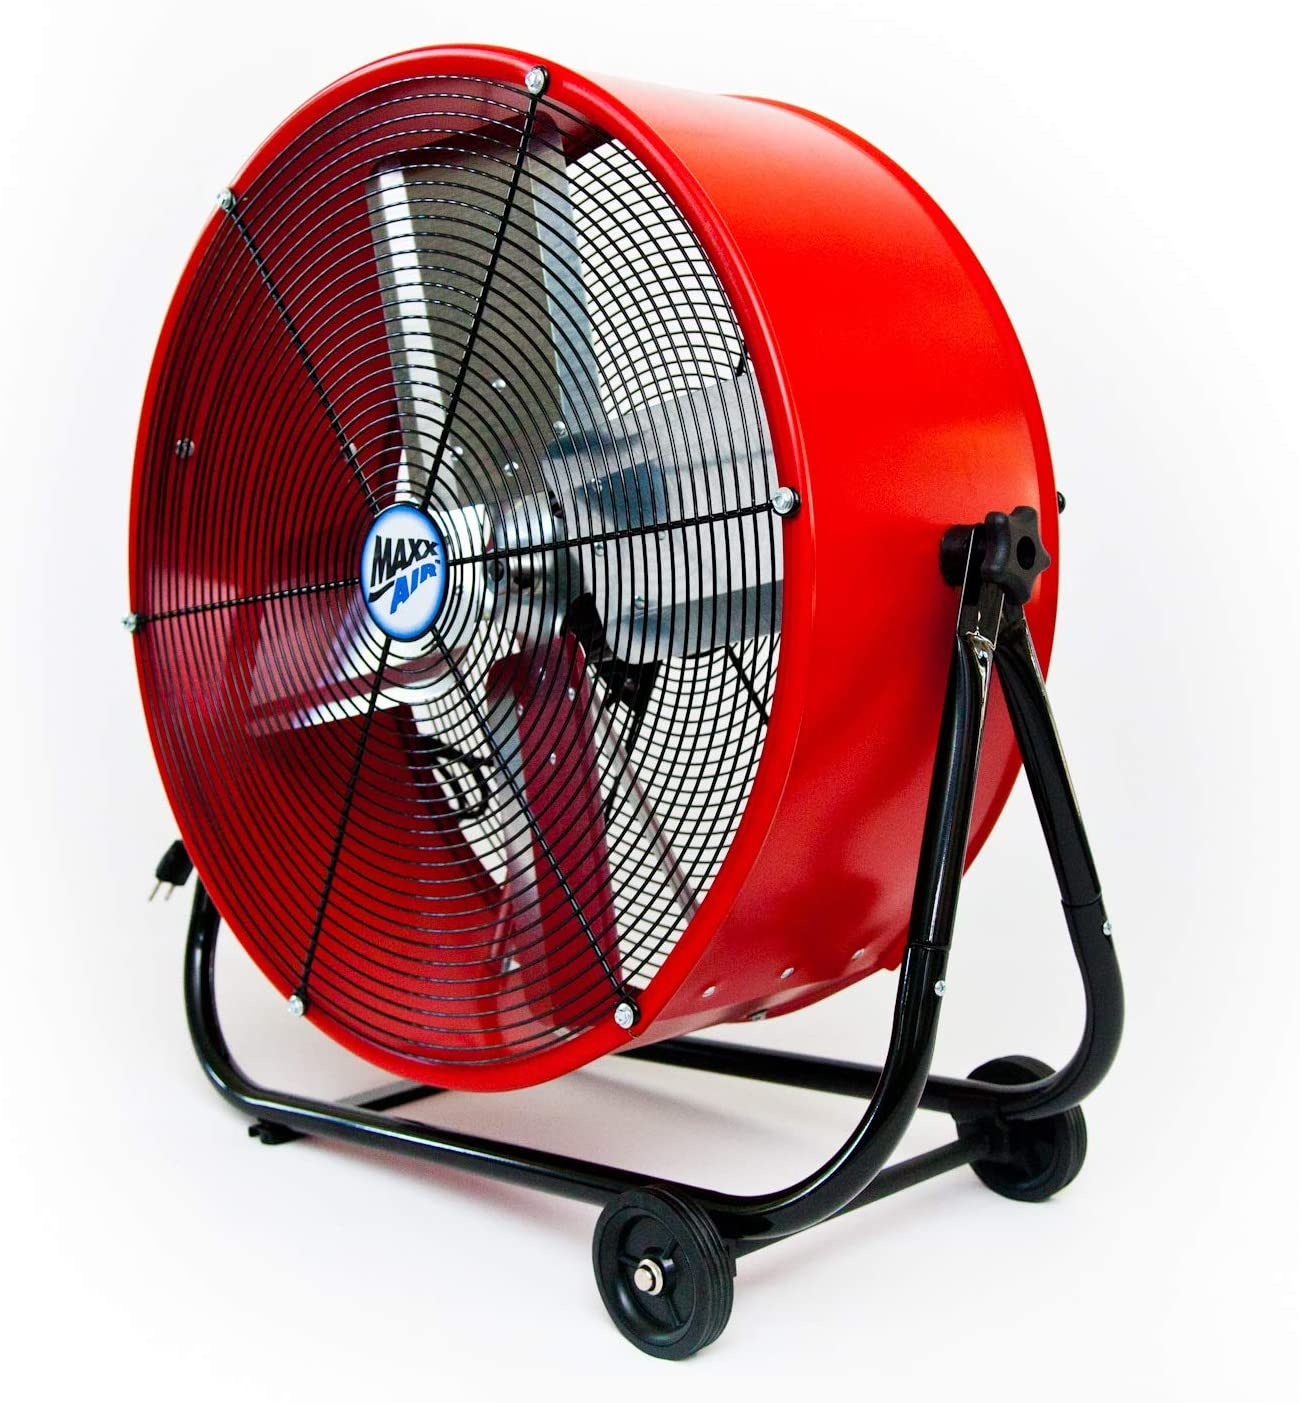 Maxx Air MaxxAir Industrial Grade Circulator for Garage, Shop, Patio, Barn Use BF24TFREDUPS 24-Inch High Velocity Drum Fan, Two-Speed, Red